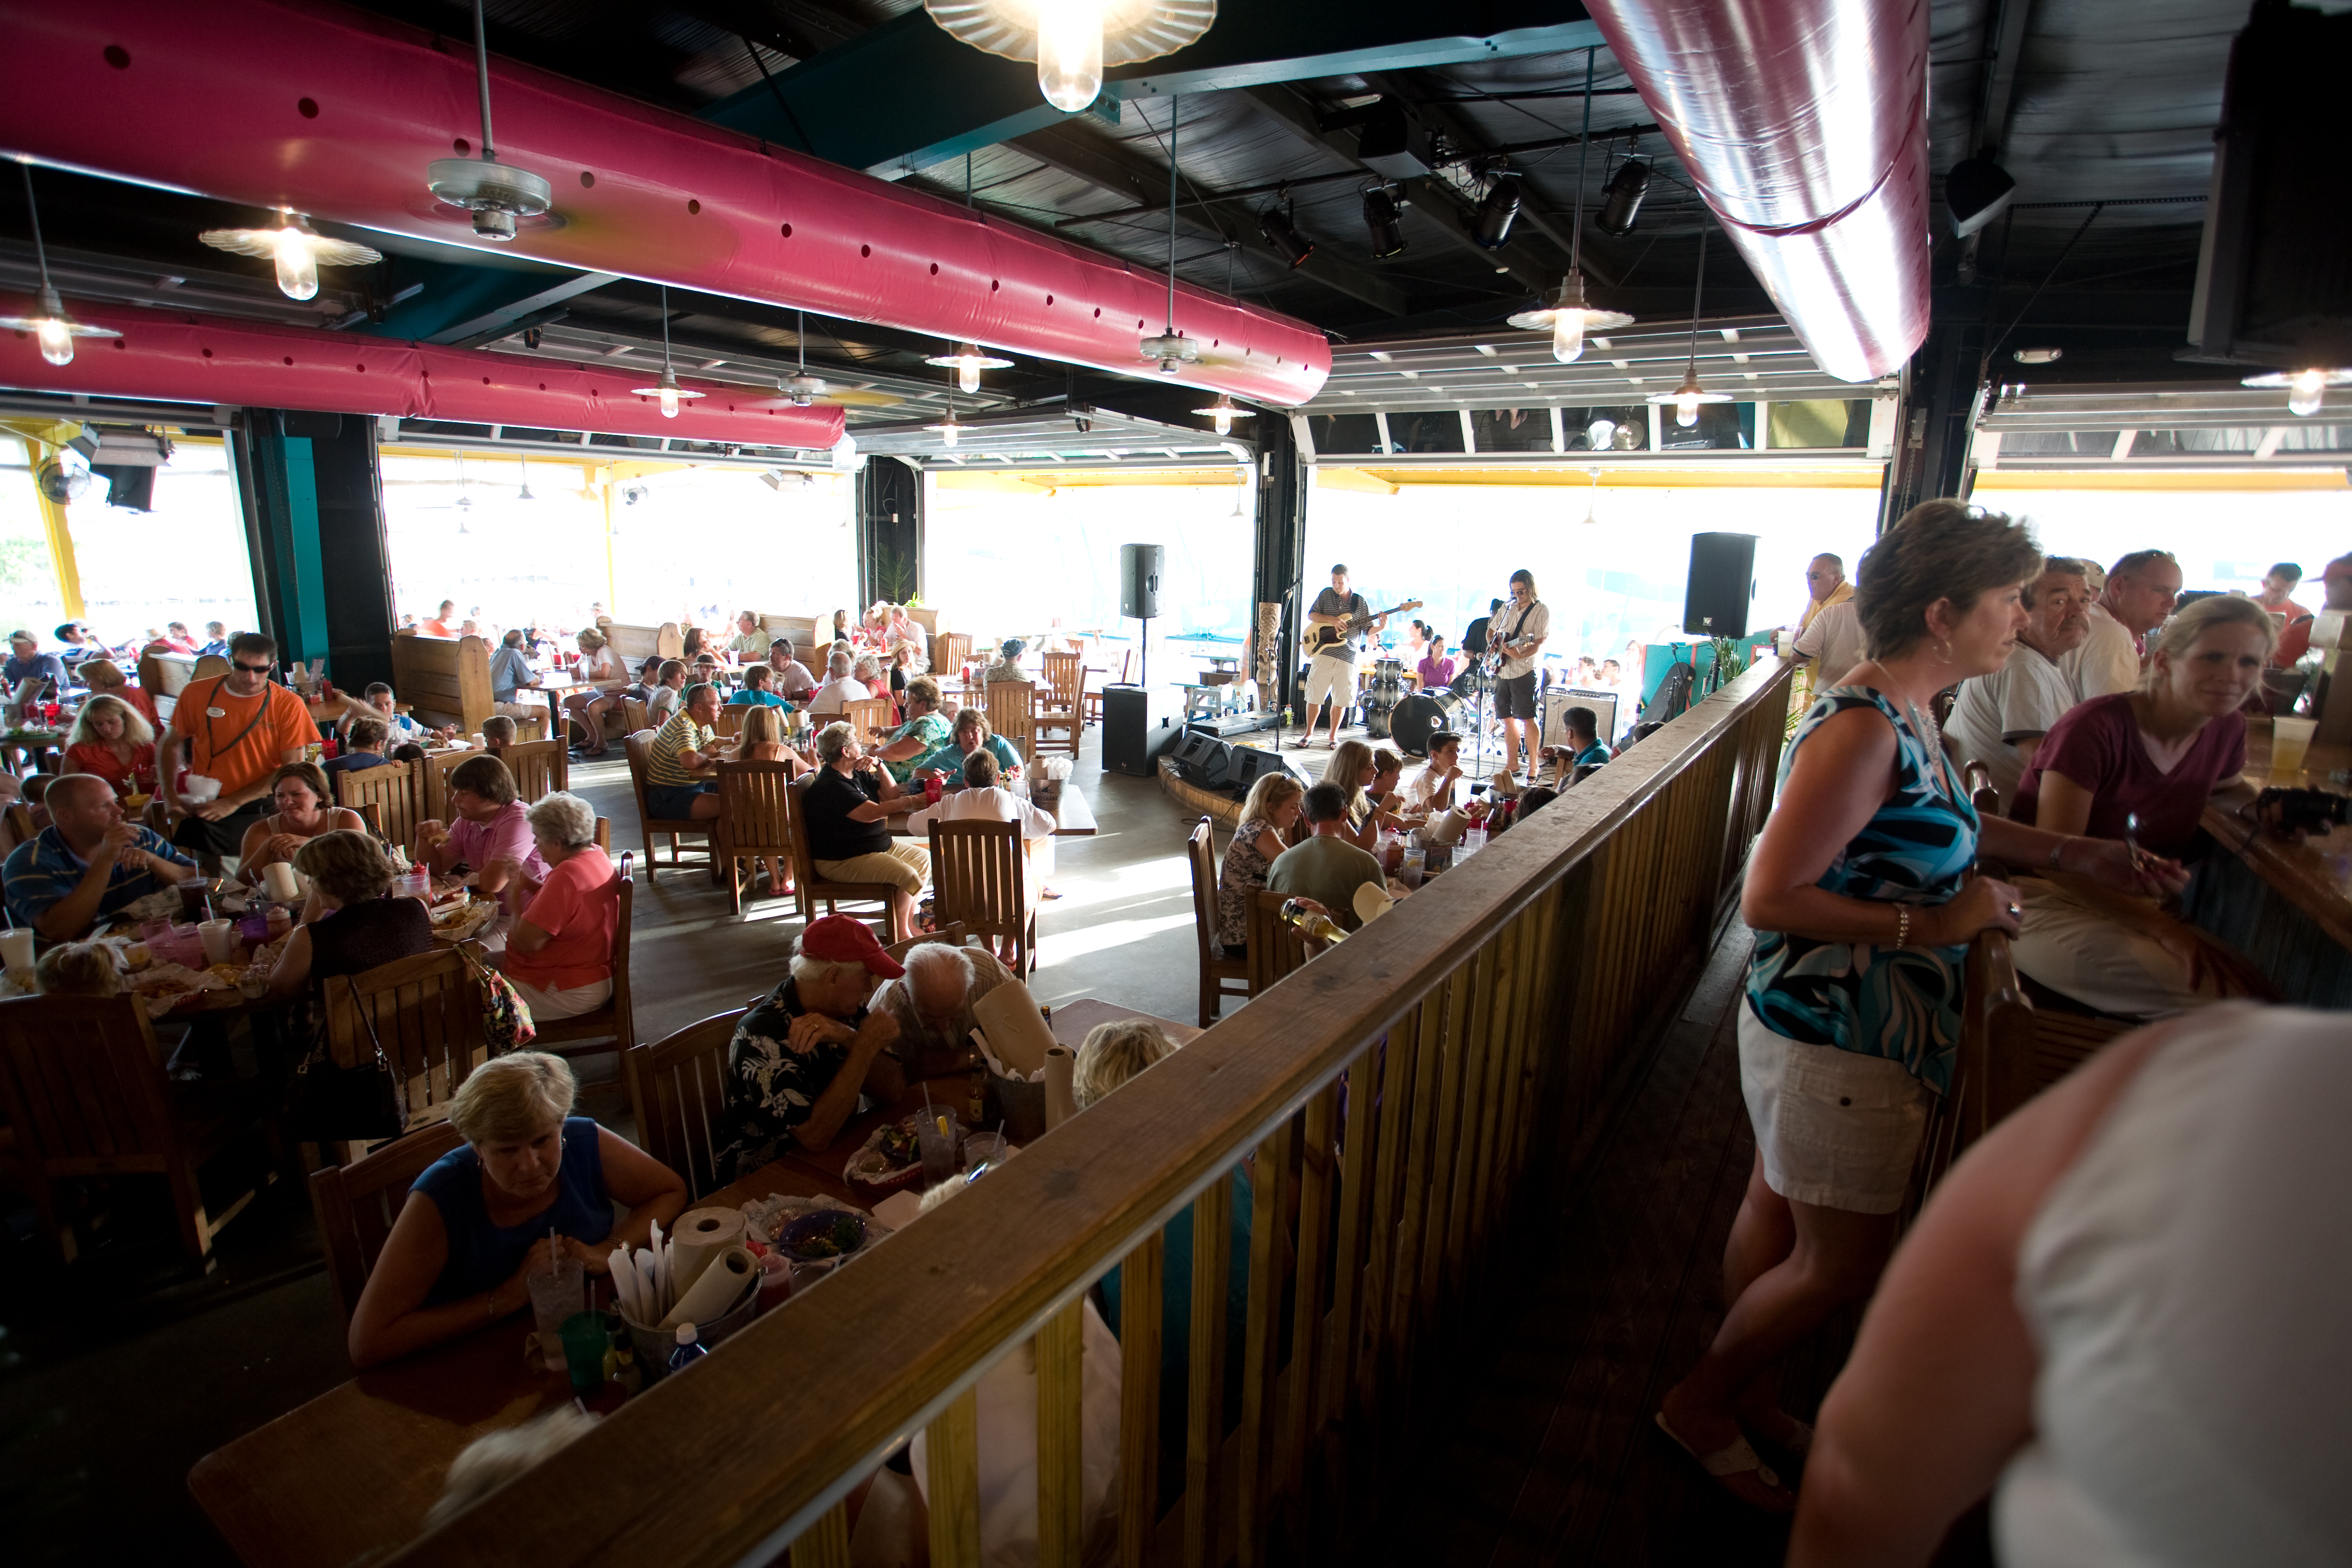 Review Of Lulus Restaurant In Gulf Shores Alabama